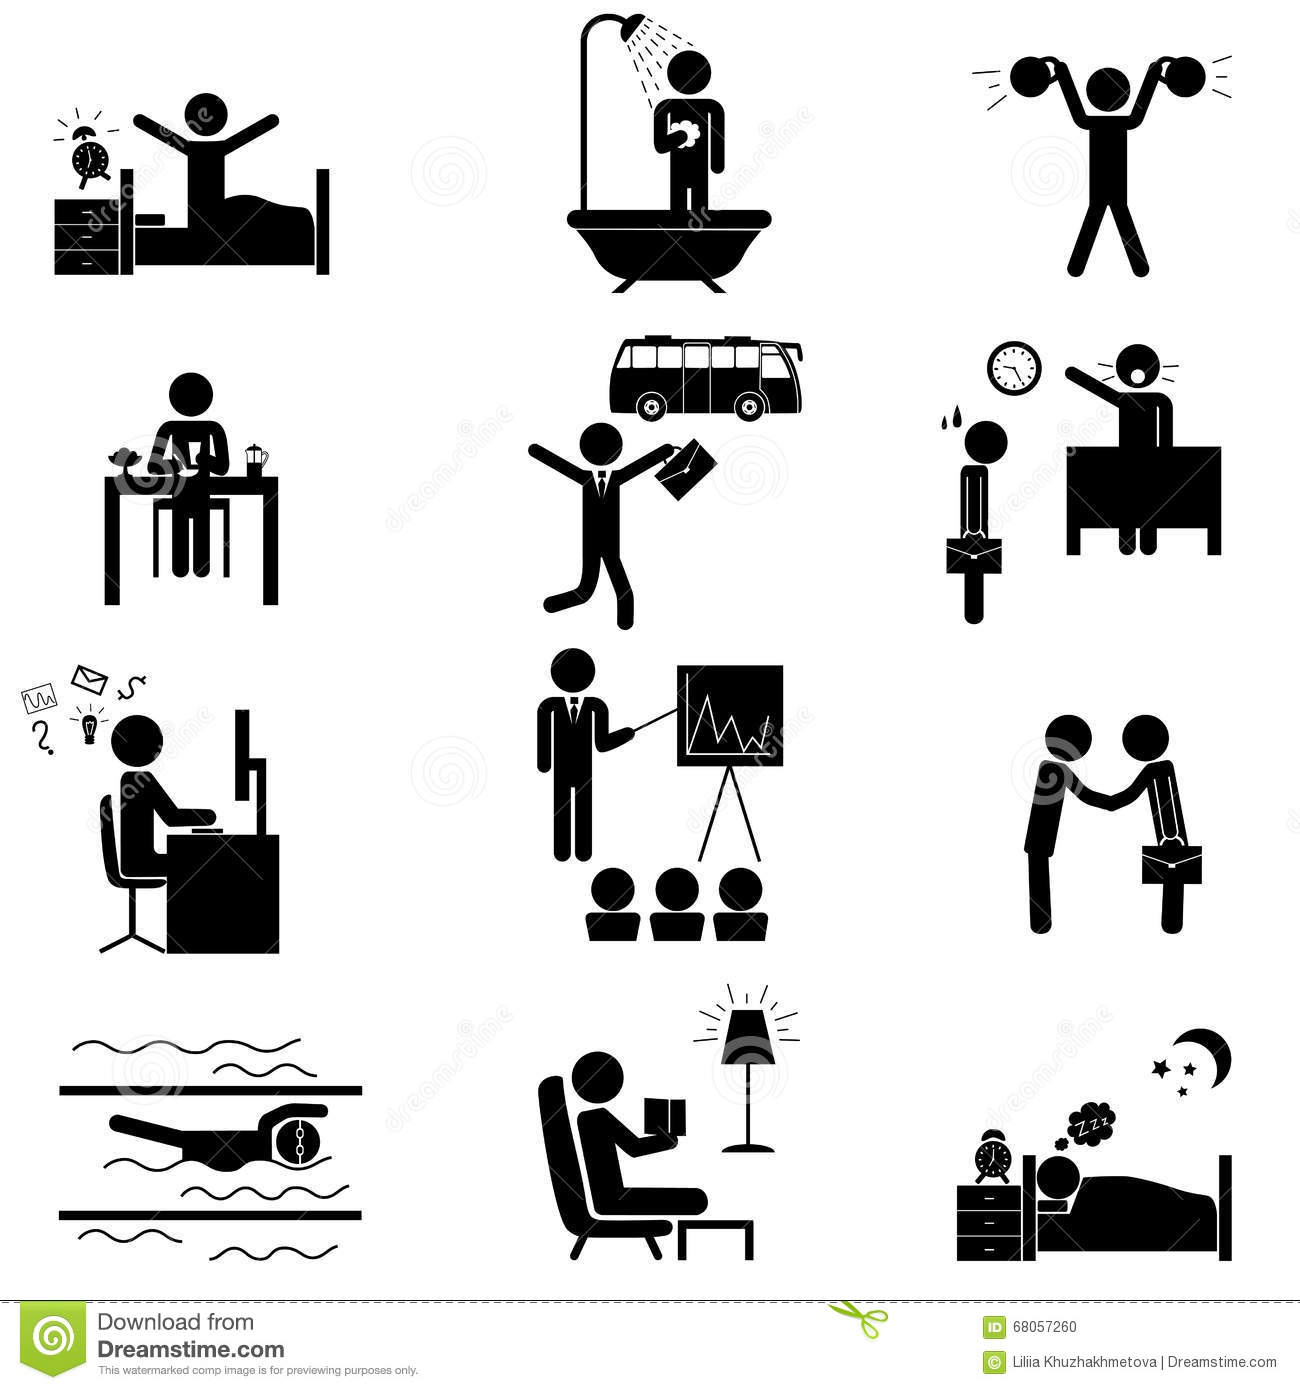 Office routine life icons stock vector. Image of